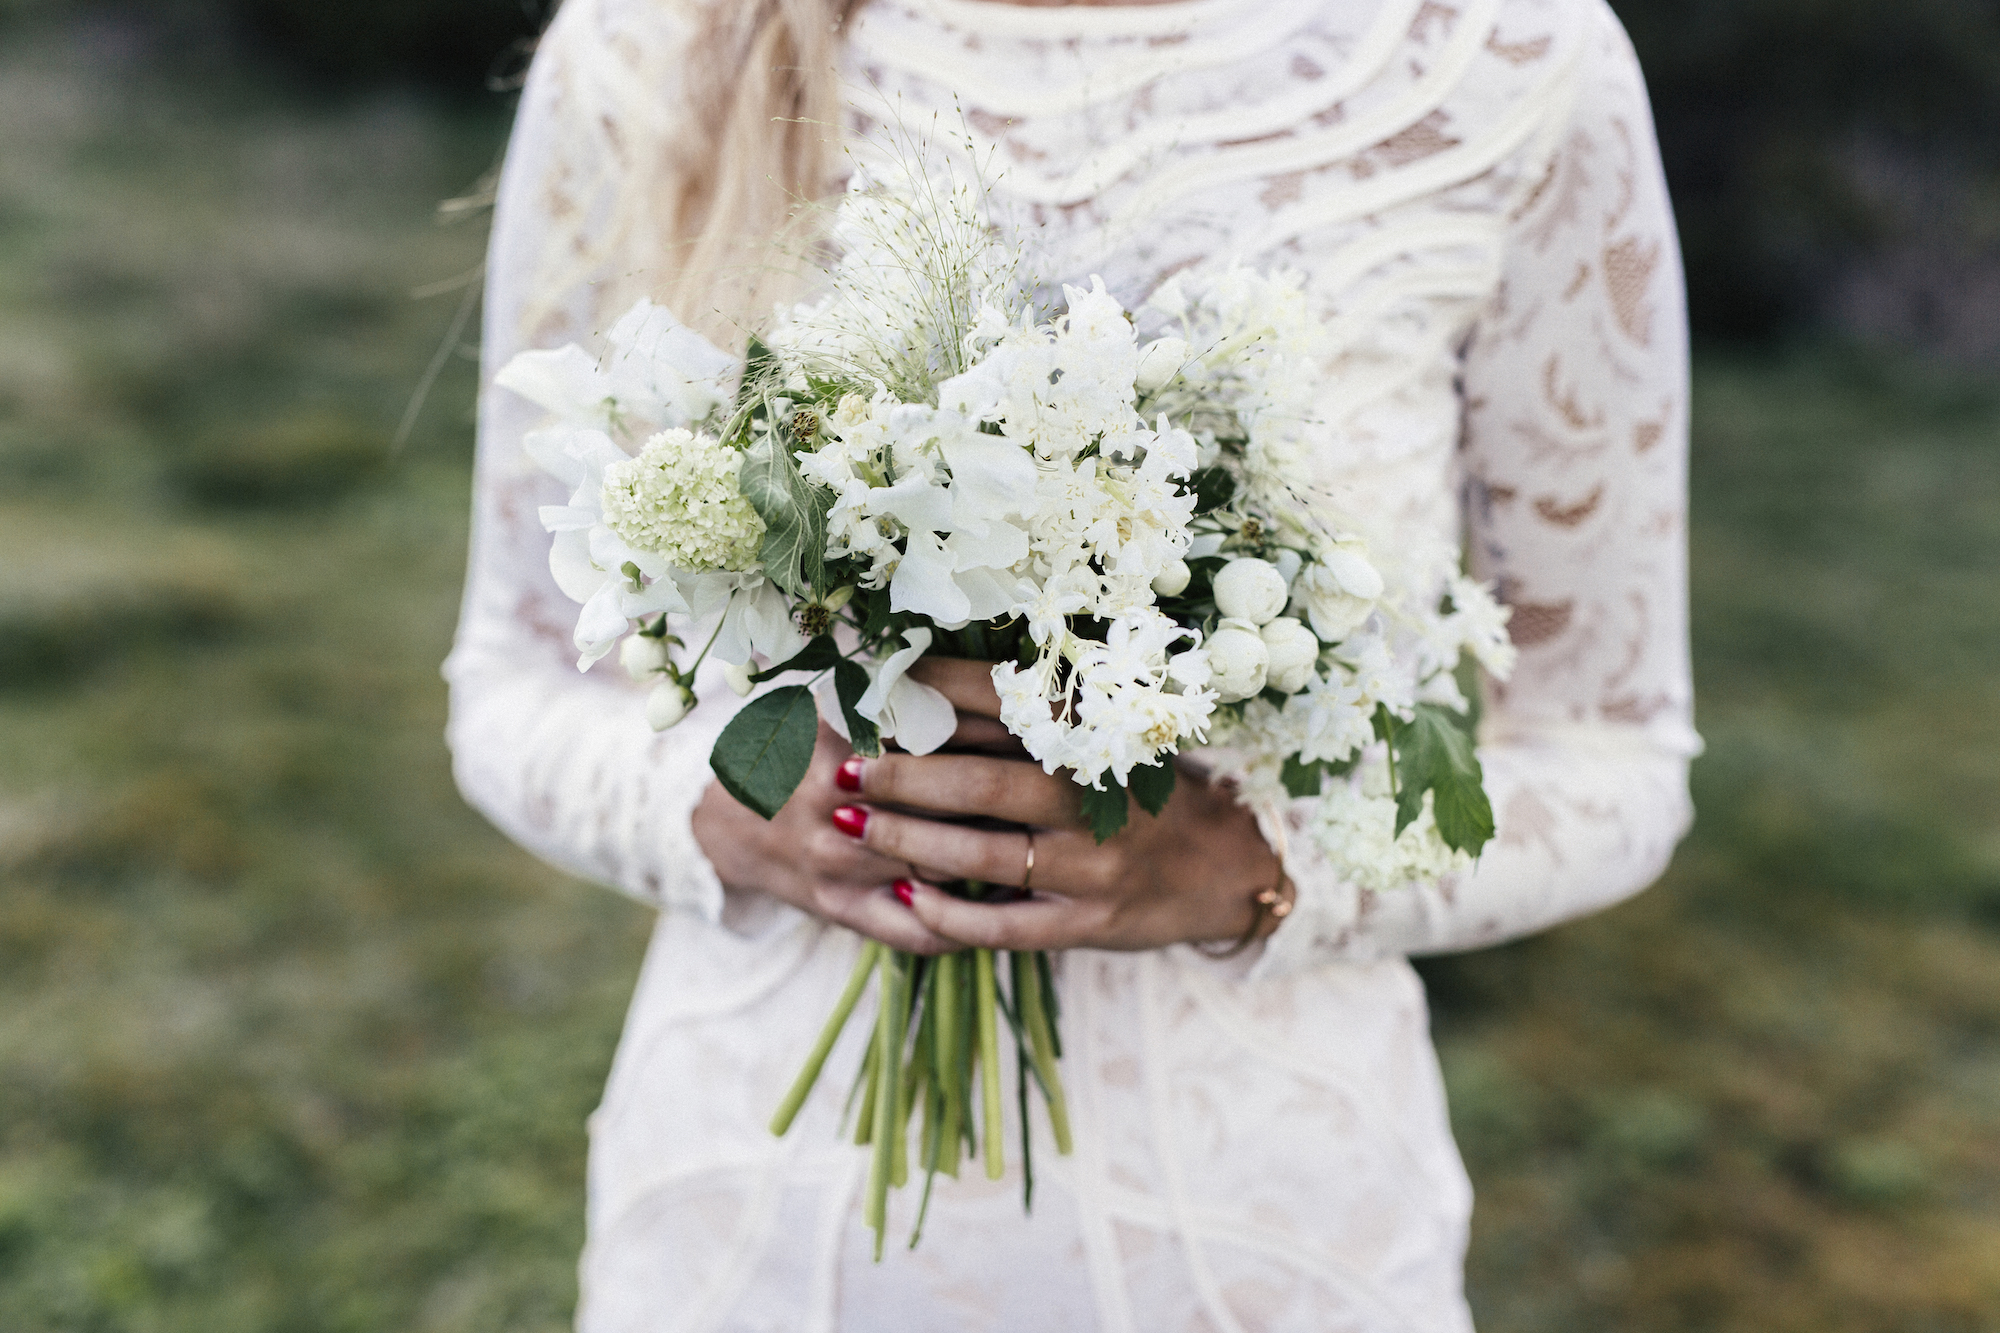 A bride wearing a lace long-sleeve wedding dress, holding flowers